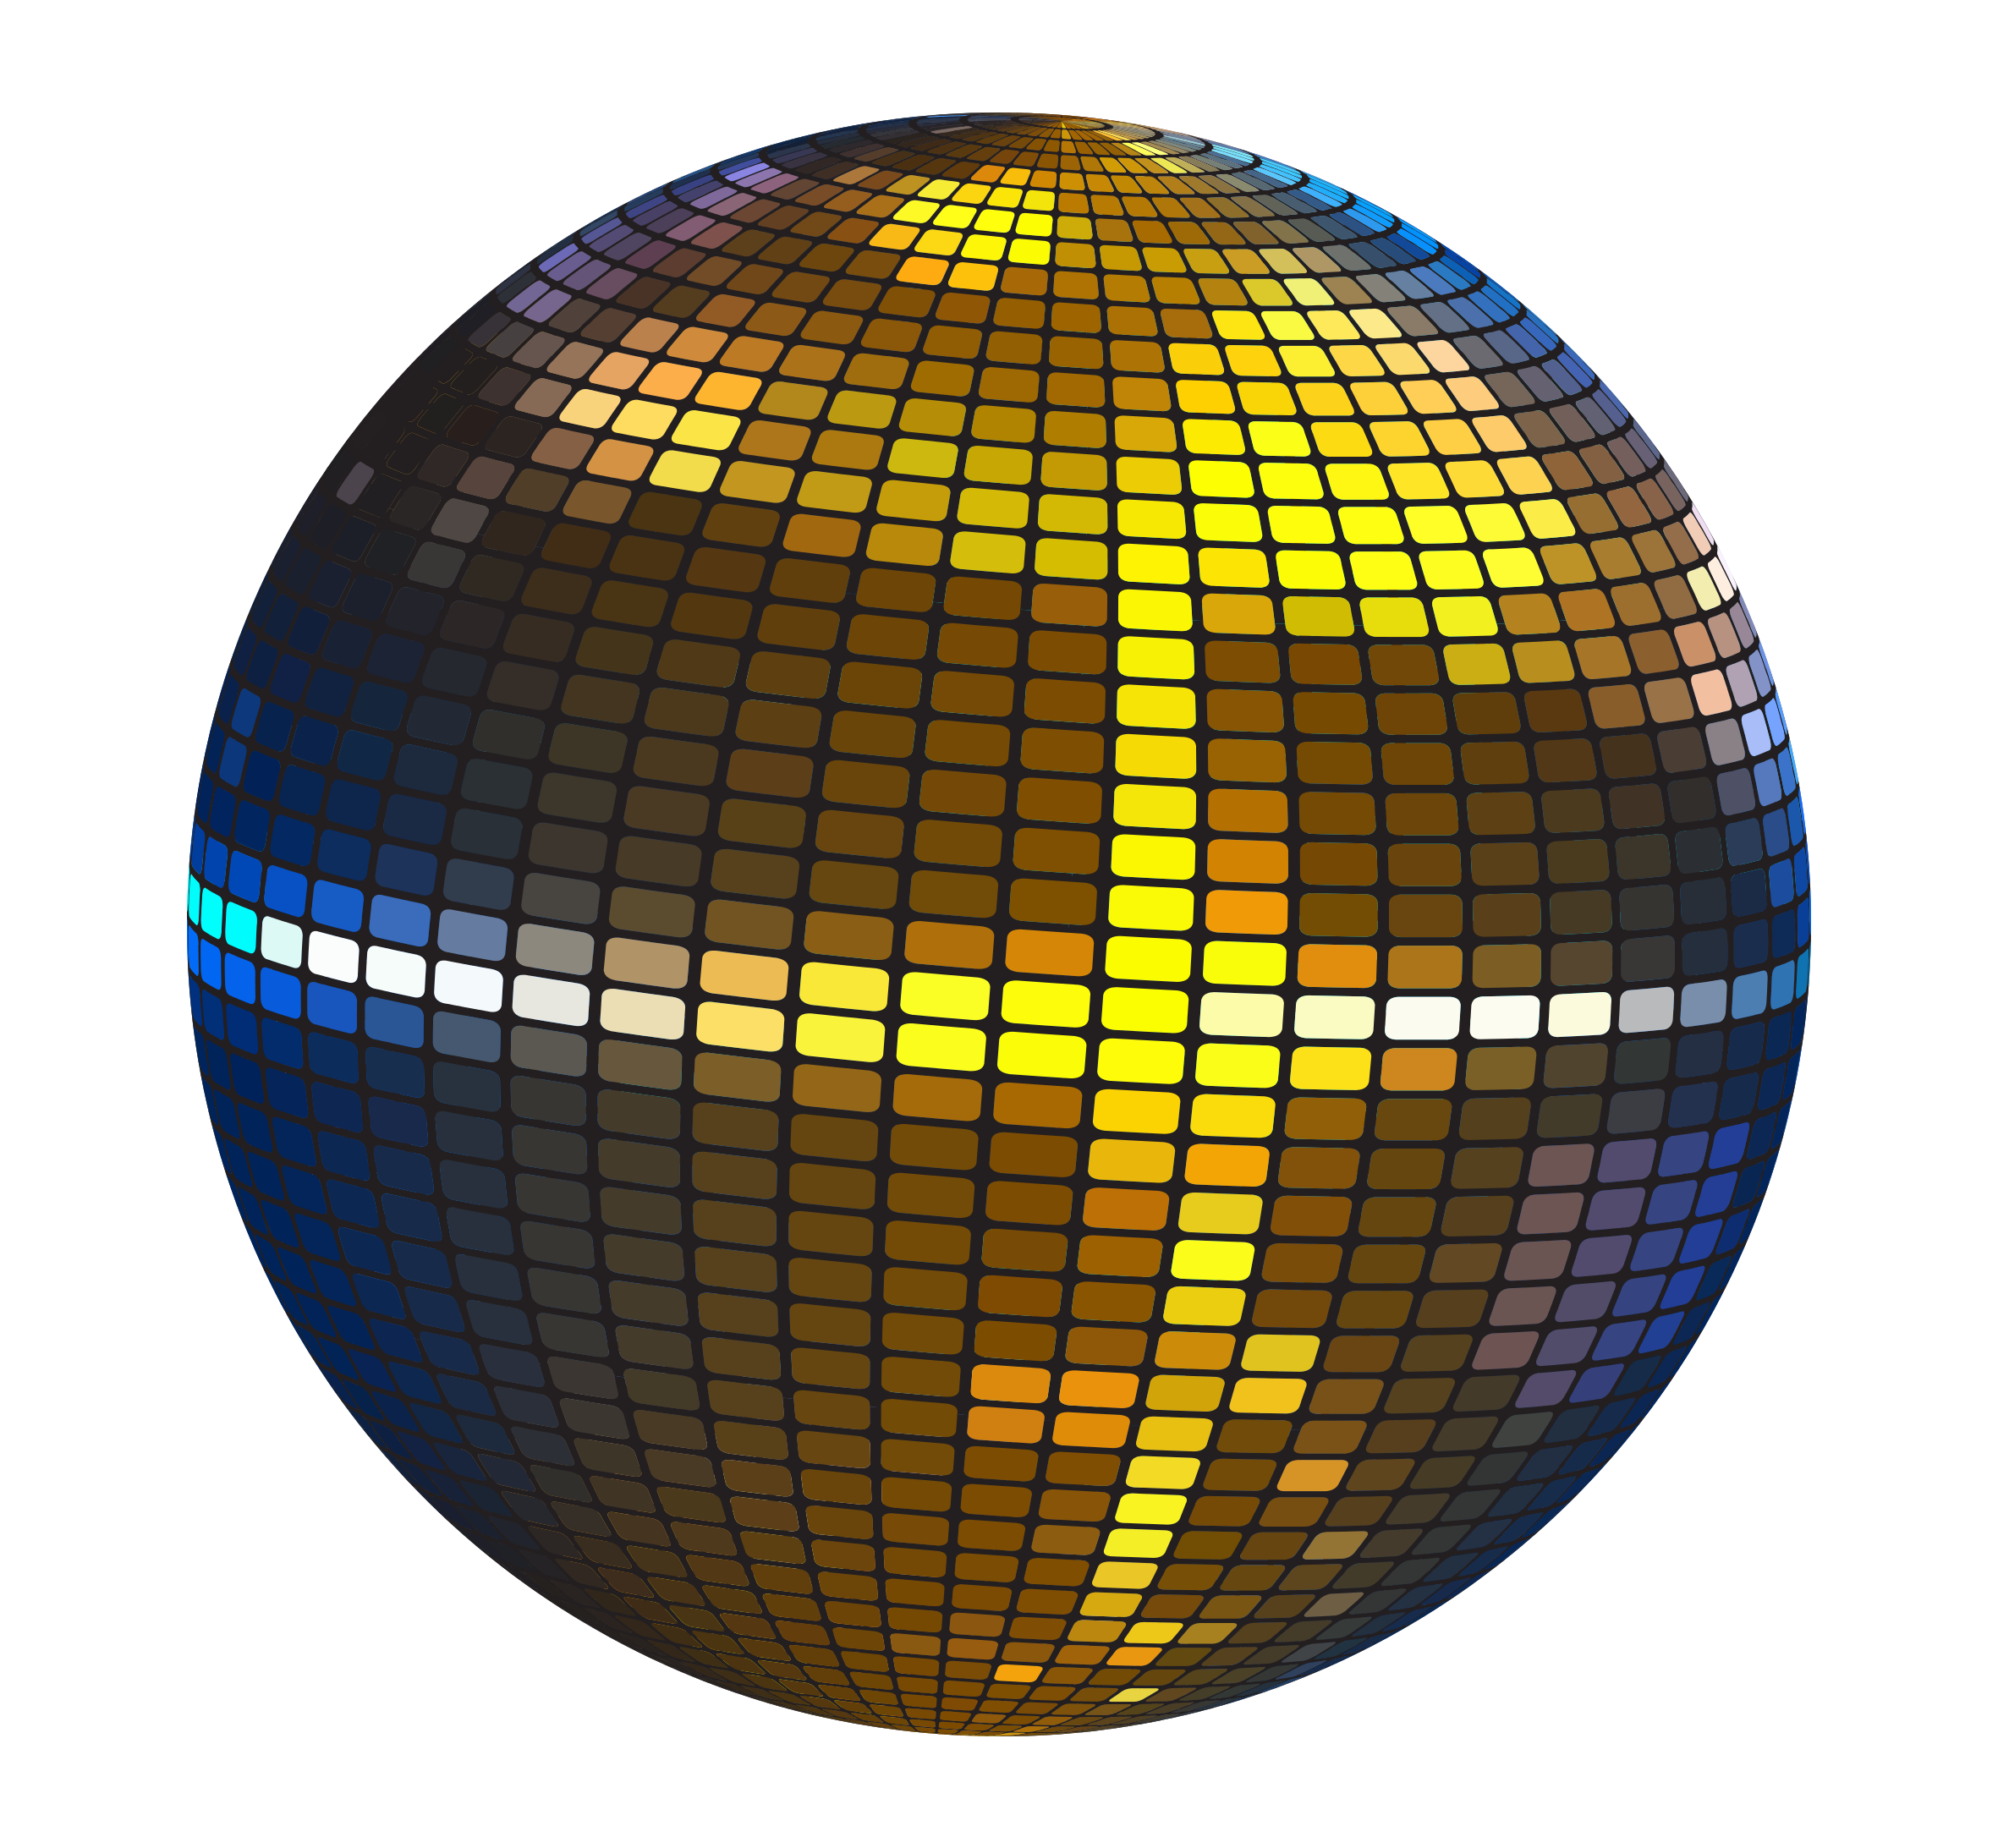 Globo de discoteca clipart images gallery for free download.